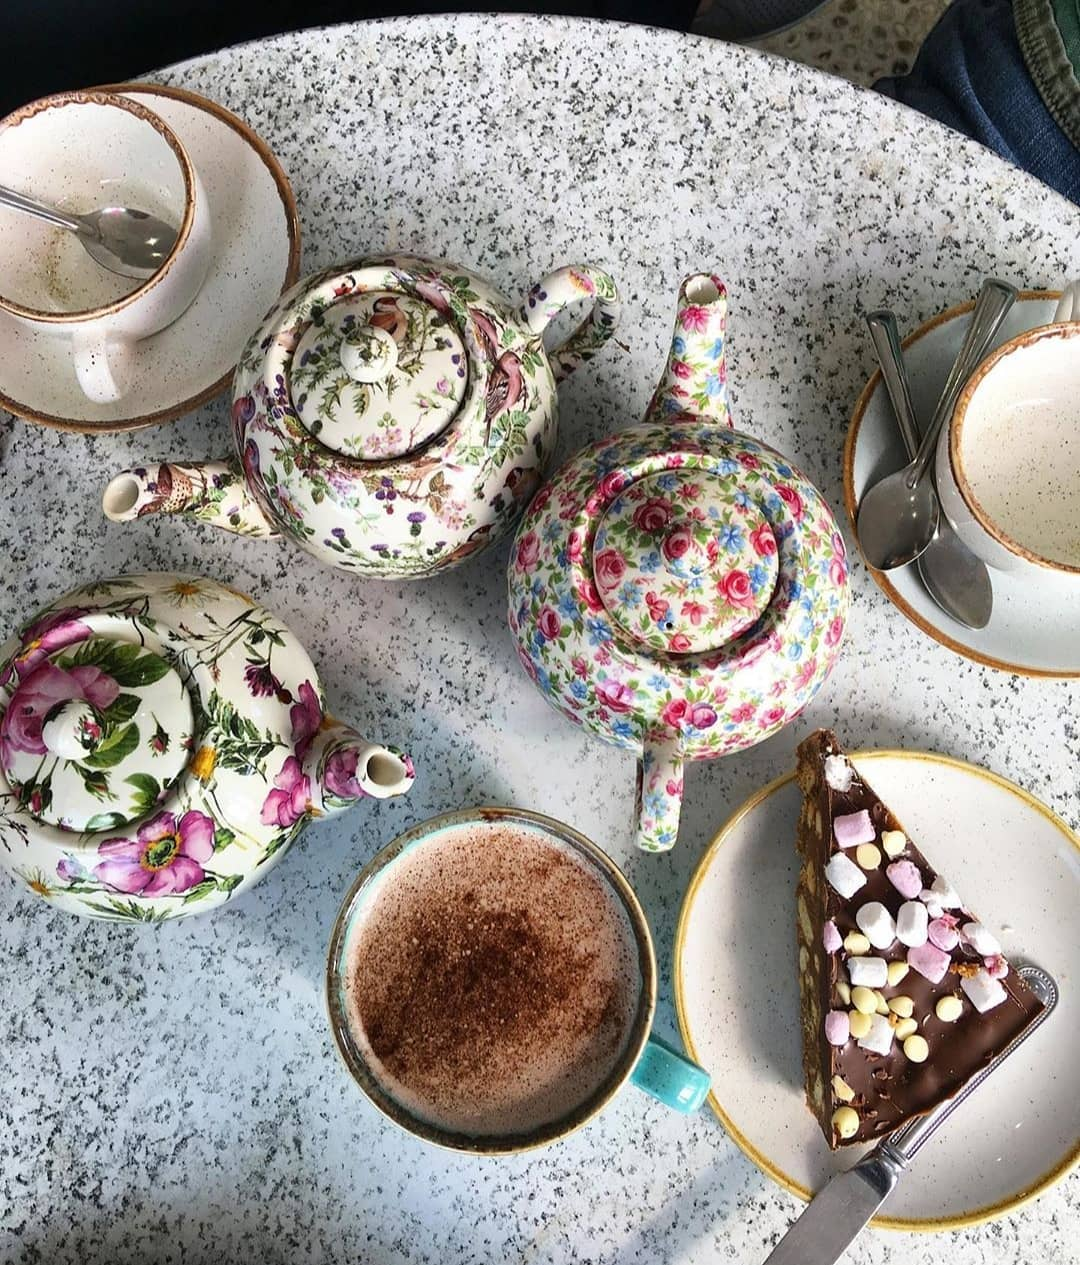 Tea & Cake by the sea! Perfect Sunday pick-me-up ☕ 🍰 📸 Thank you @mugwumpclarke for a beautiful shot  #teaandcake #yum #suffolk #southwoldpier #clockhouse #forkyeah